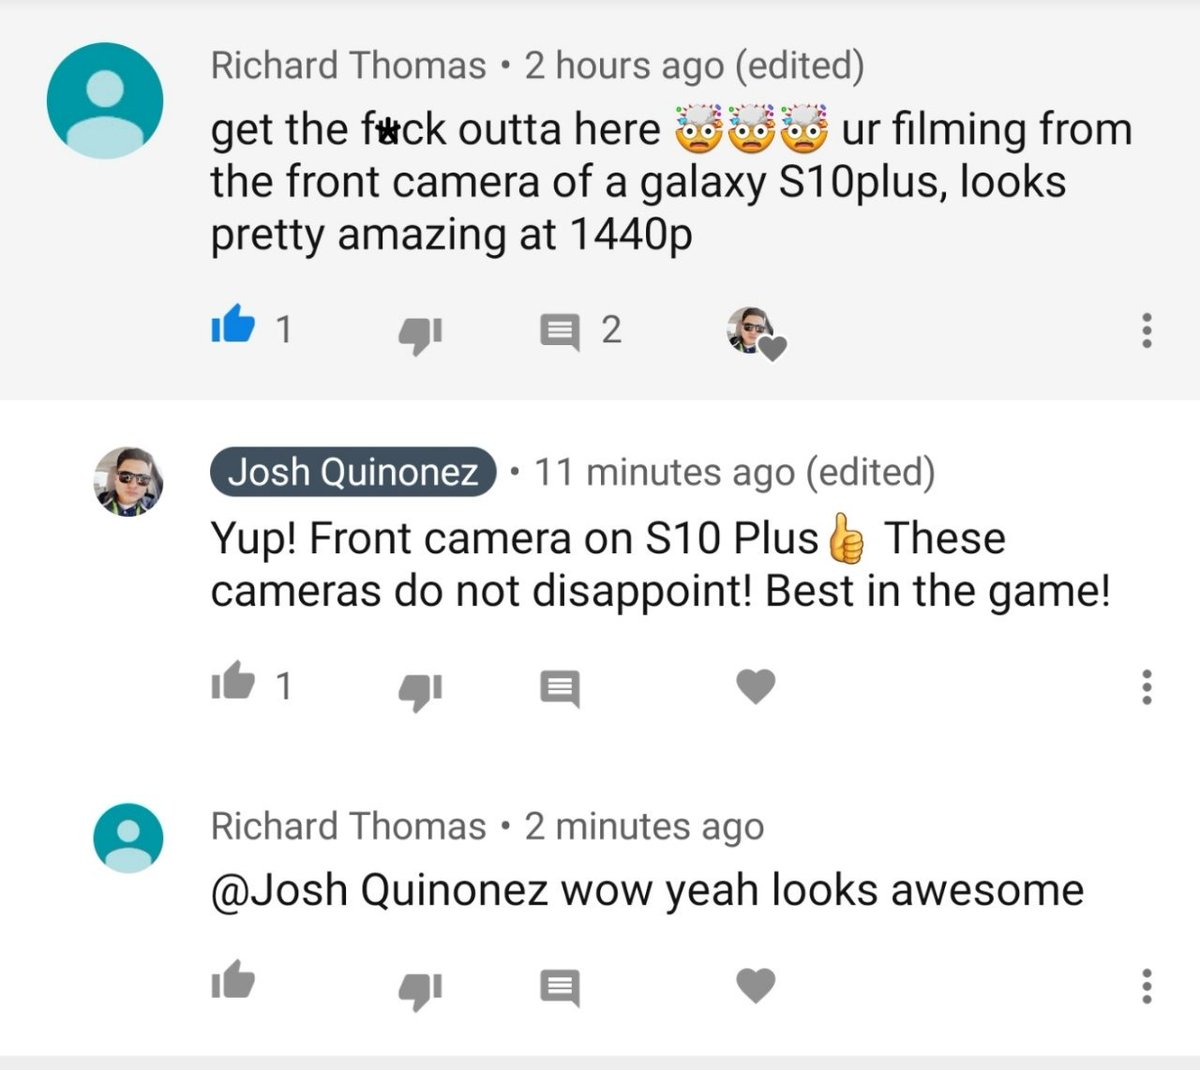 This goes to show you just how great the Cameras are on the @SamsungMobileUS #GalaxyS10Plus I used the front facing camera at 4K to film my recent #GalaxyNote9 video and most couldn't even tell. As this comment right here shows, its mind blowing!!! #withGalaxy<br>http://pic.twitter.com/HXtiplaki1